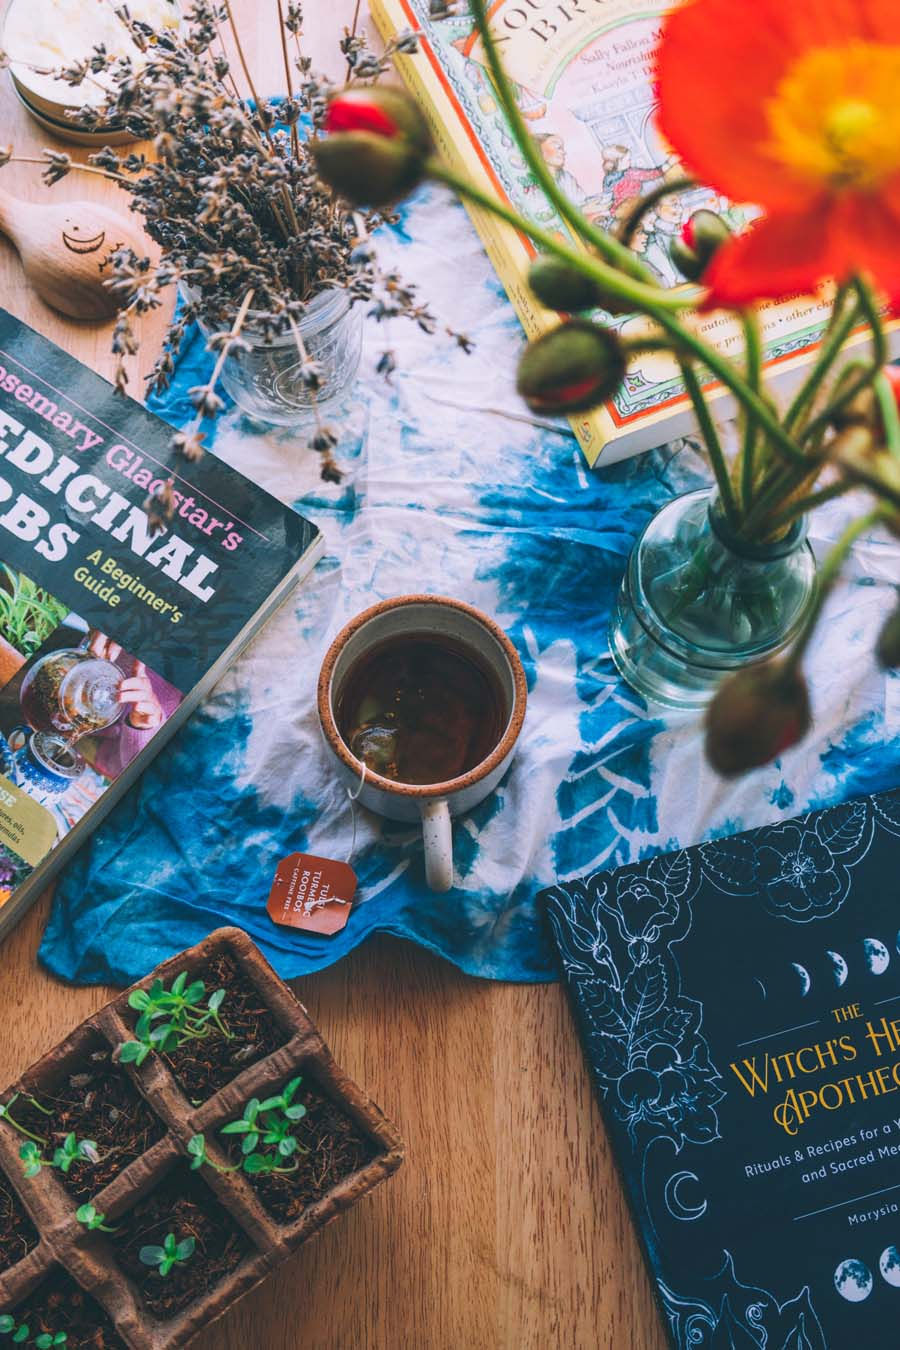 Tea, plant friends and herbalism books make for a great afternoon!